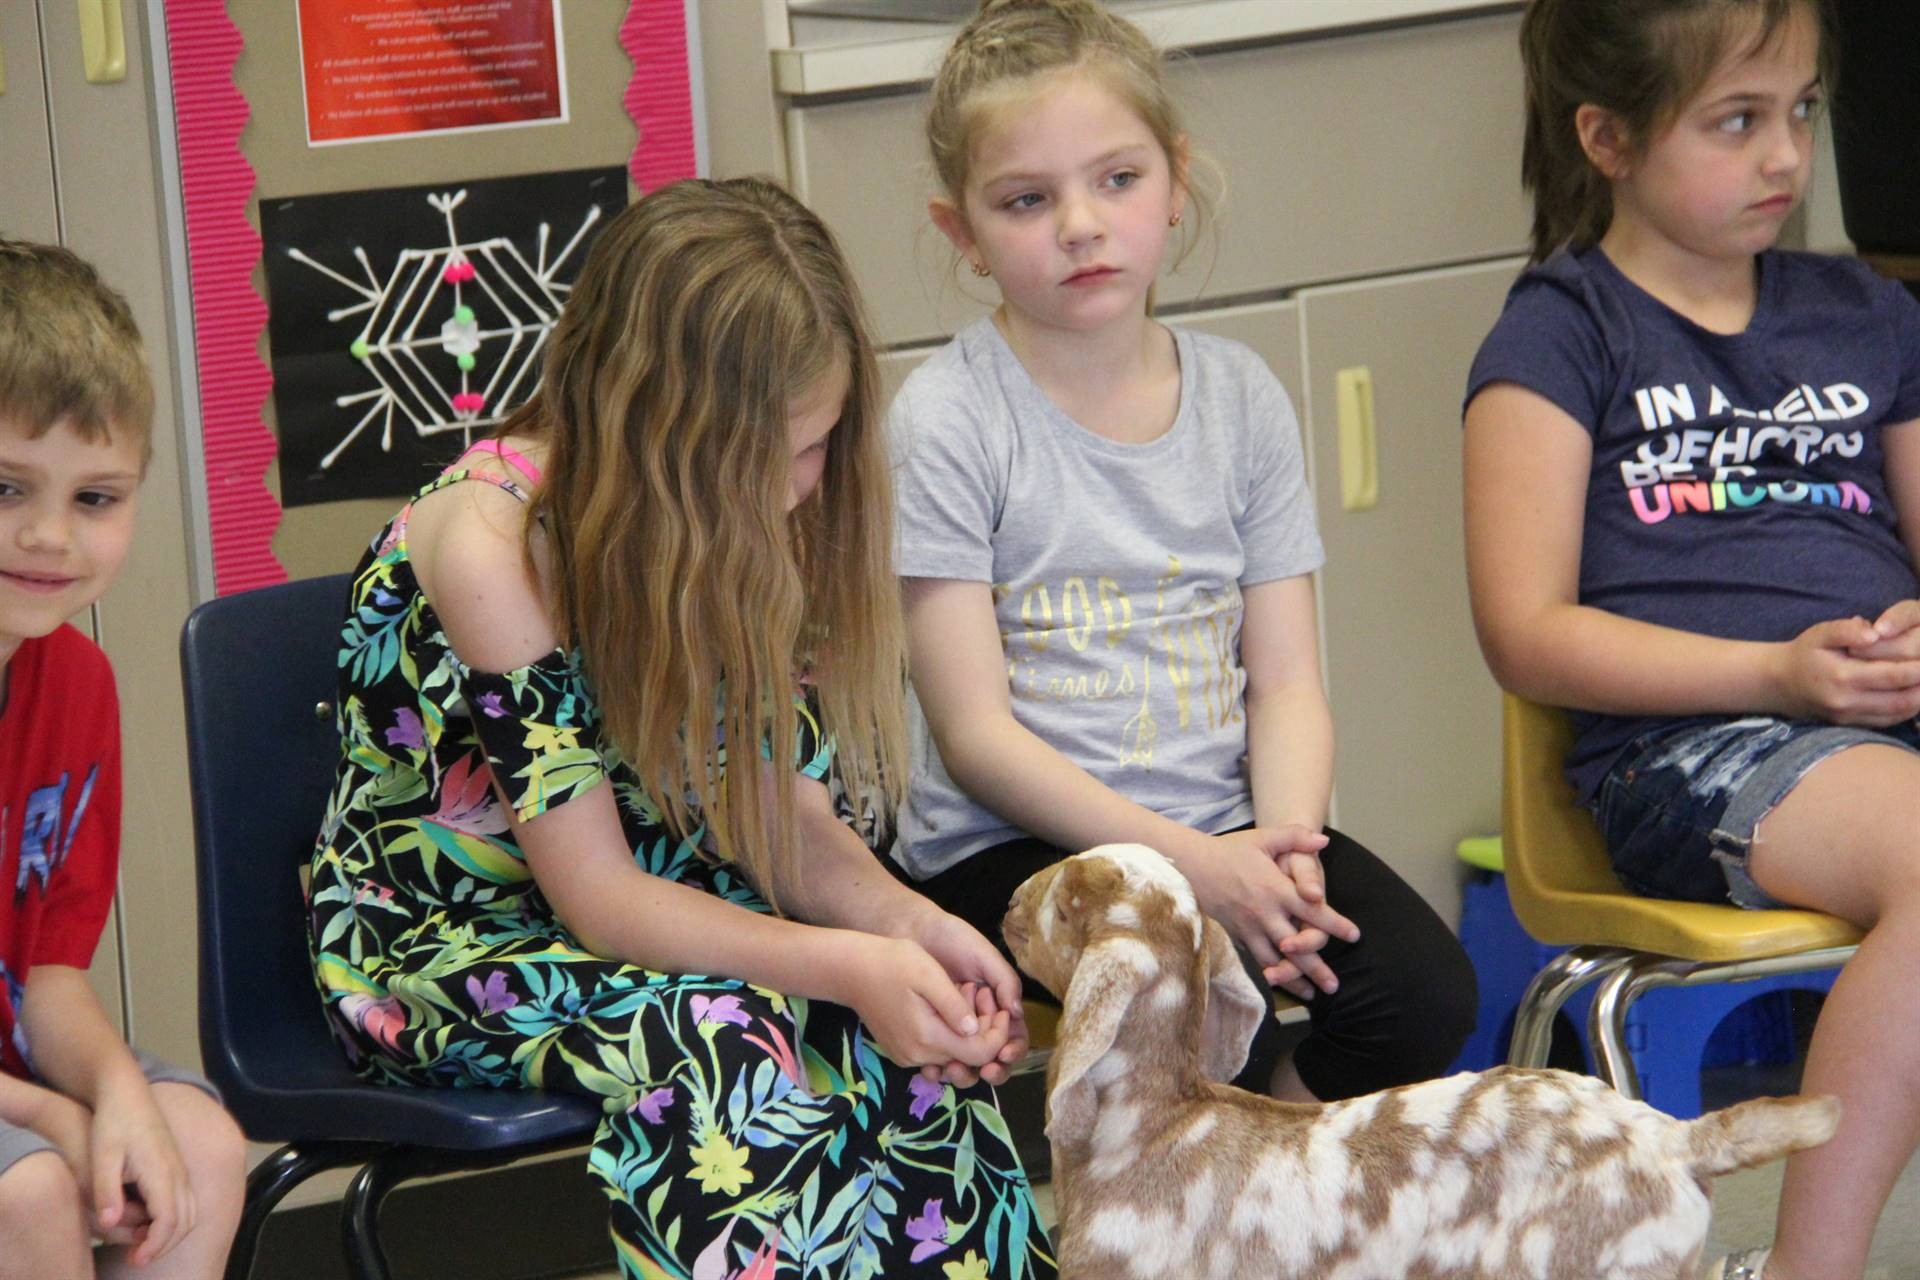 goat visiting student sitting 5